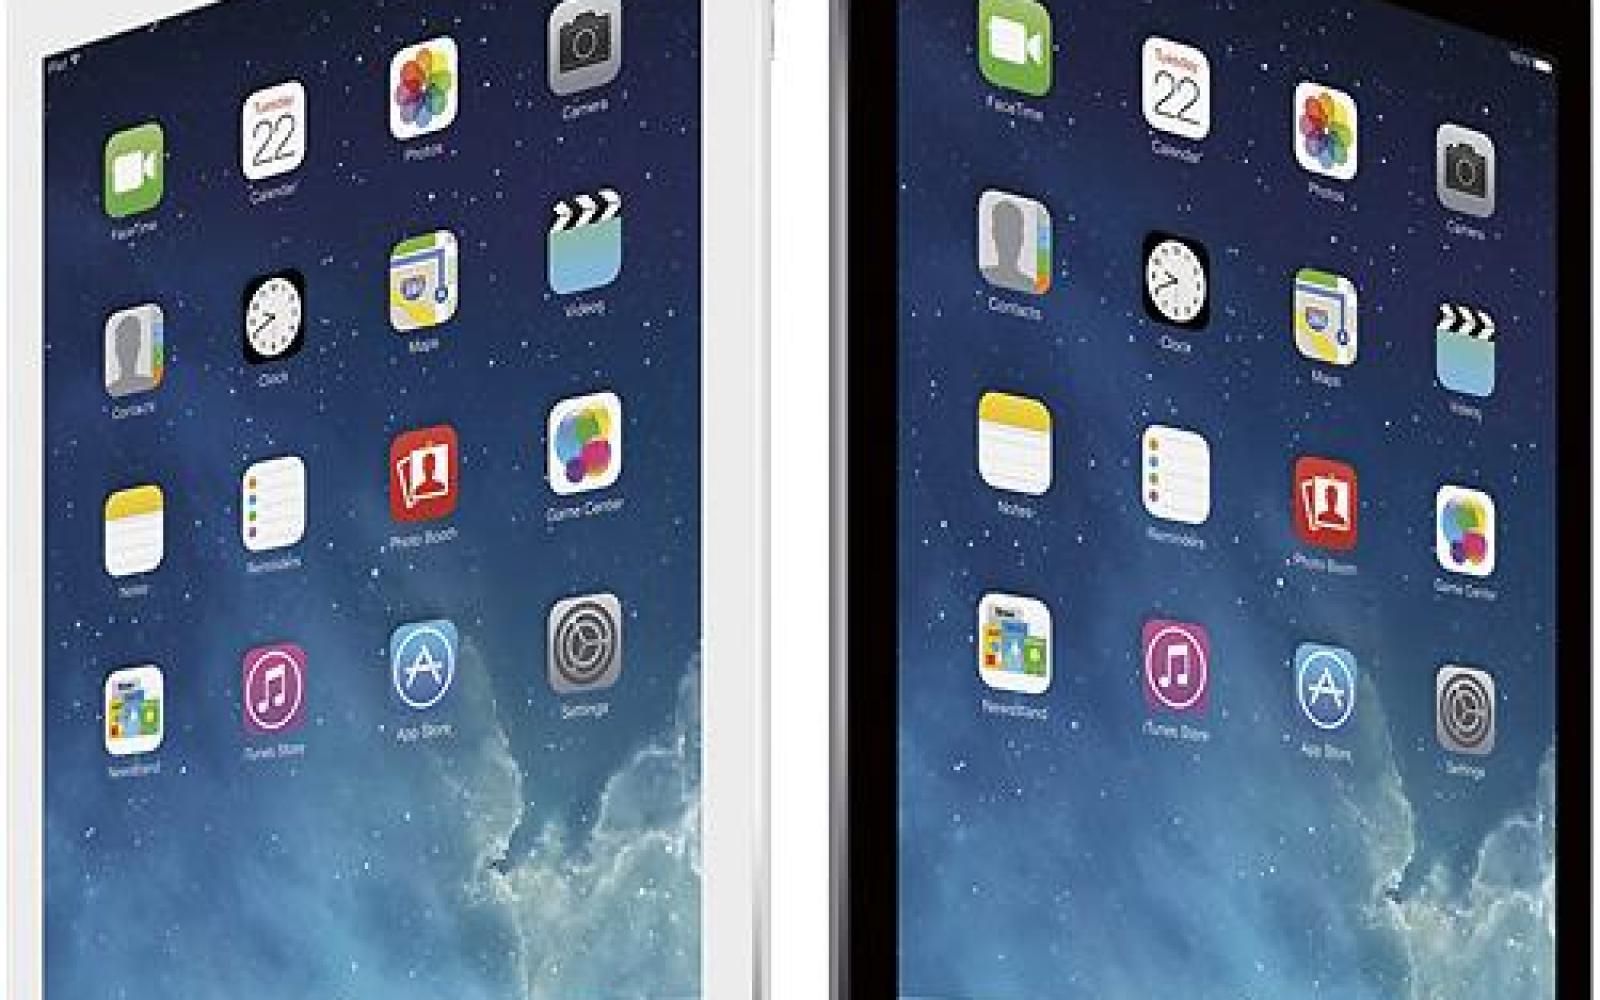 Analyst says iPad tops other tablets in Q4, accounting for a third of all tablets sold in 2013